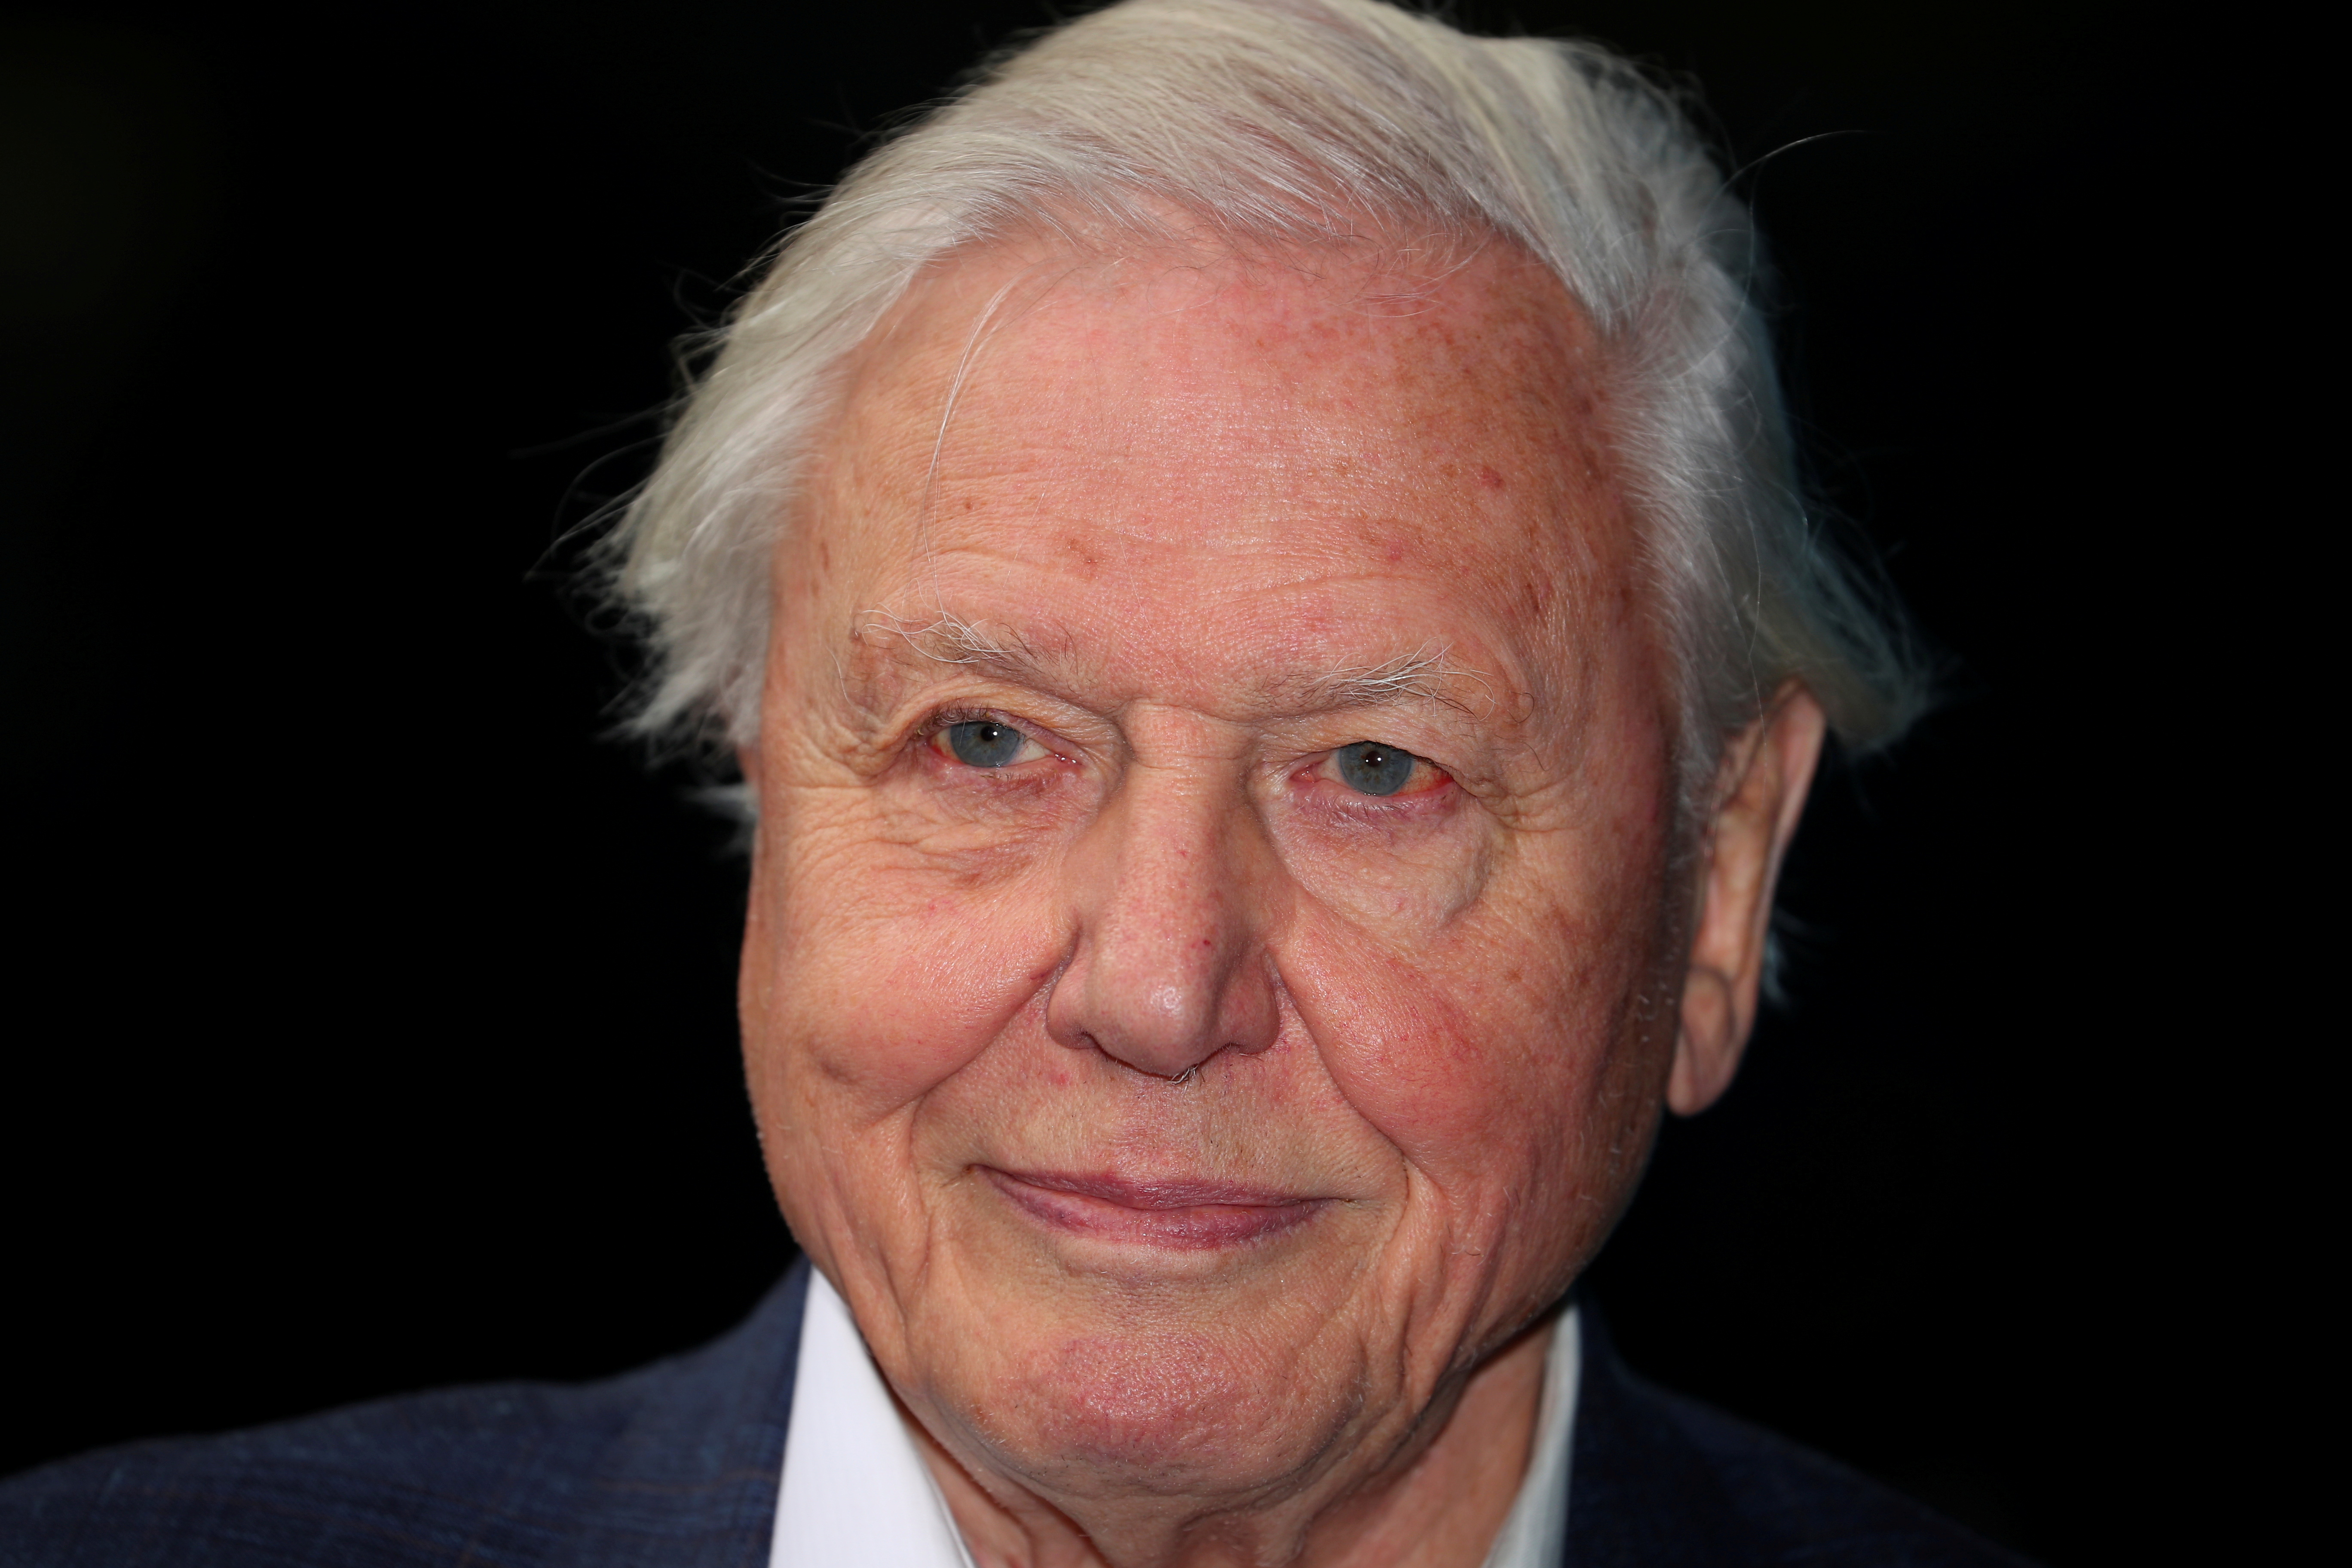 Broadcaster and film maker David Attenborough attends the premiere of Blue Planet II at the British Film Institute in London, Britain, September 27, 2017. REUTERS/Hannah McKay/File Photo